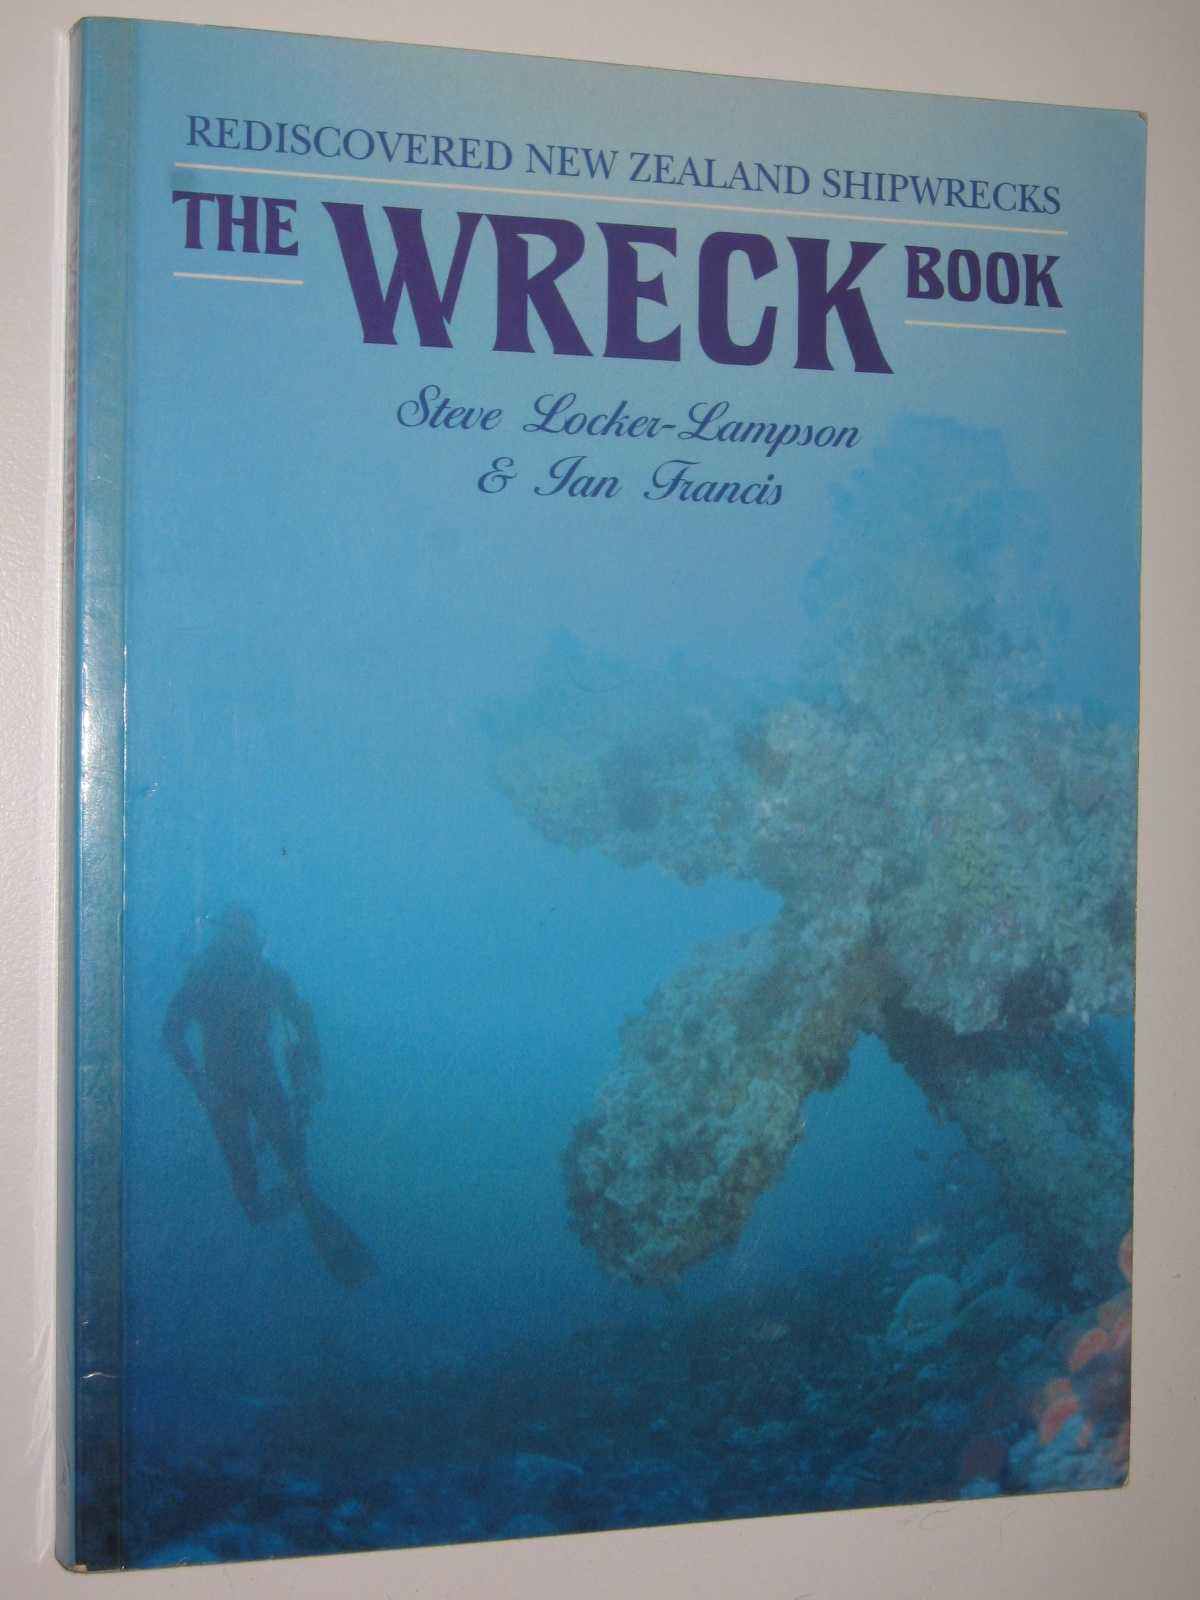 The Wreck Book : Rediscovered New Zealand Shipwrecks, Locker-Lampson, Steve & Francis, Ian